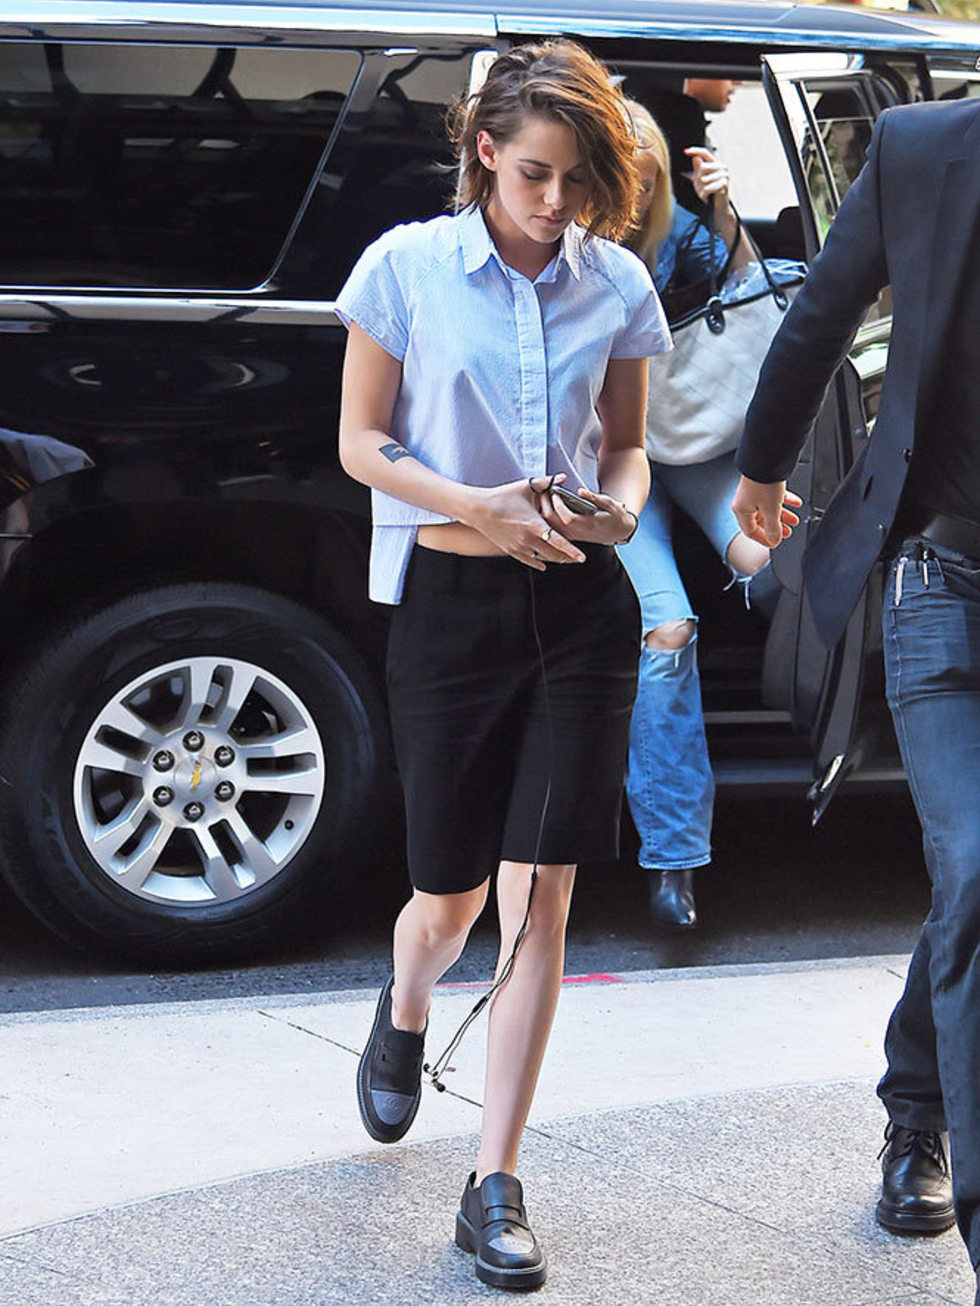 How to look stylish with kristen stewart style